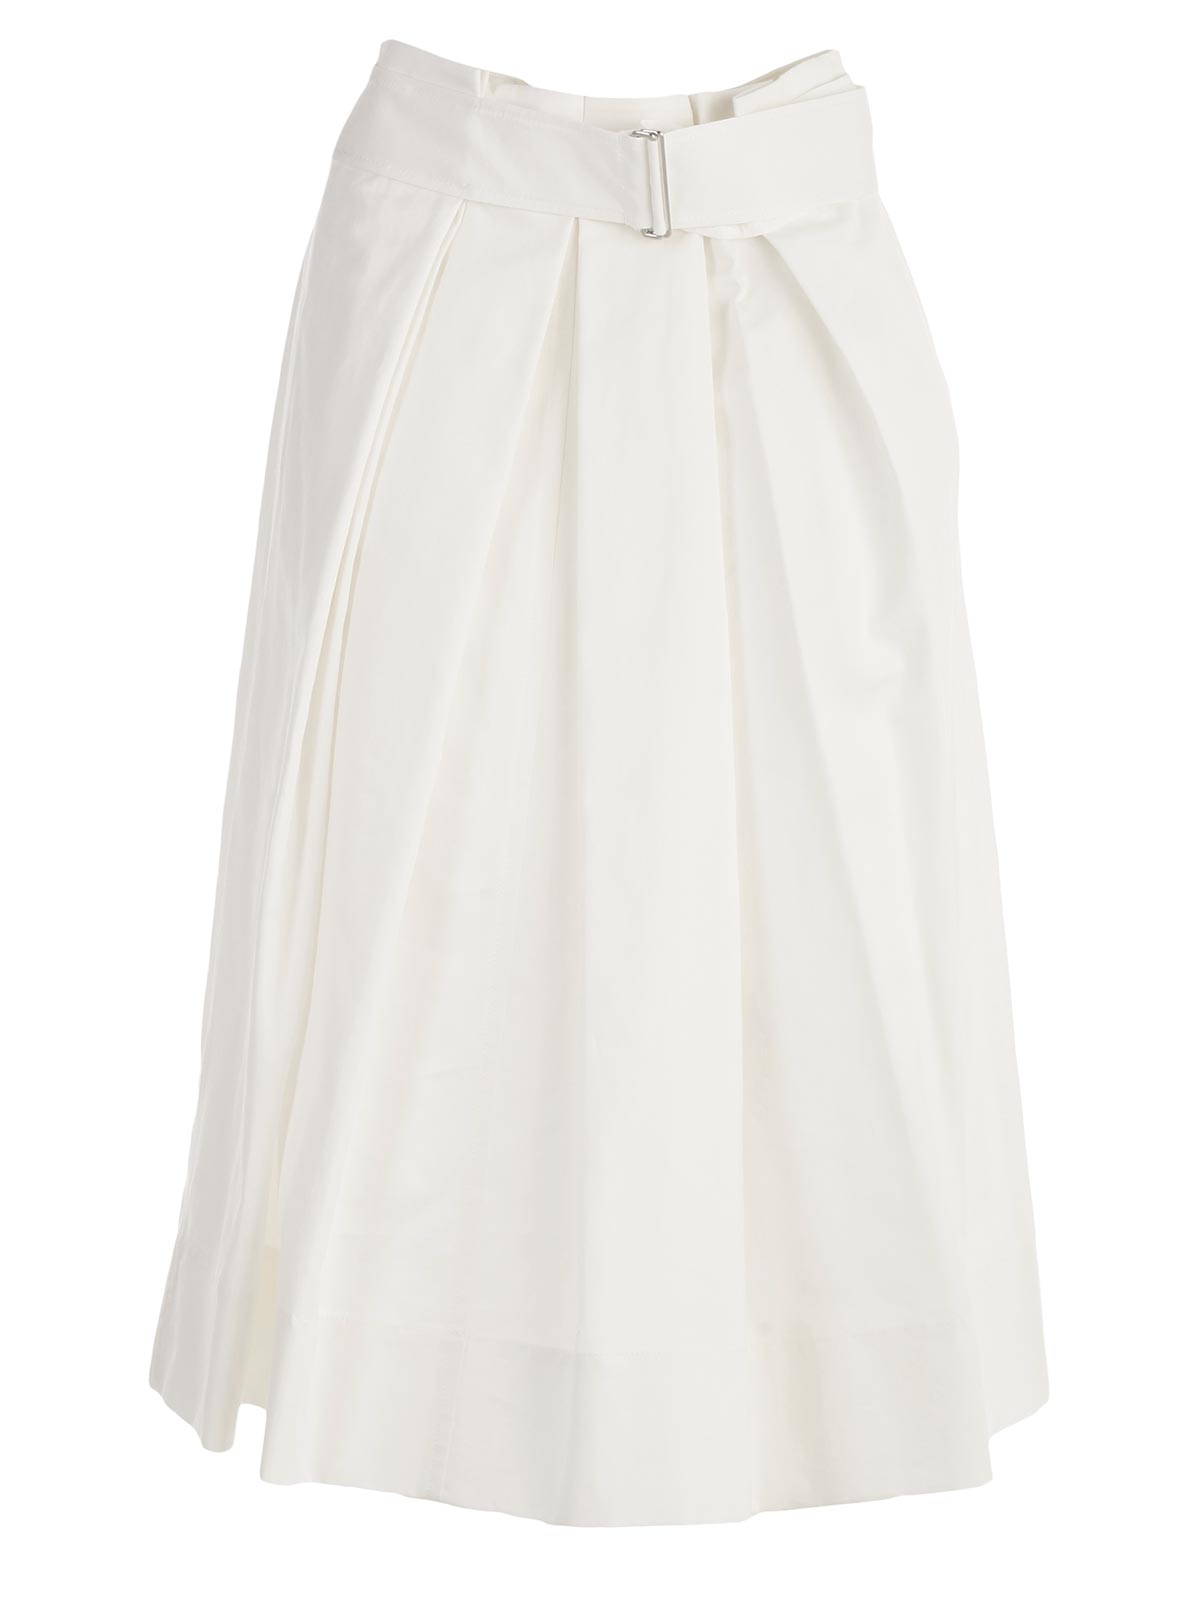 Picture of DKNY SKIRT